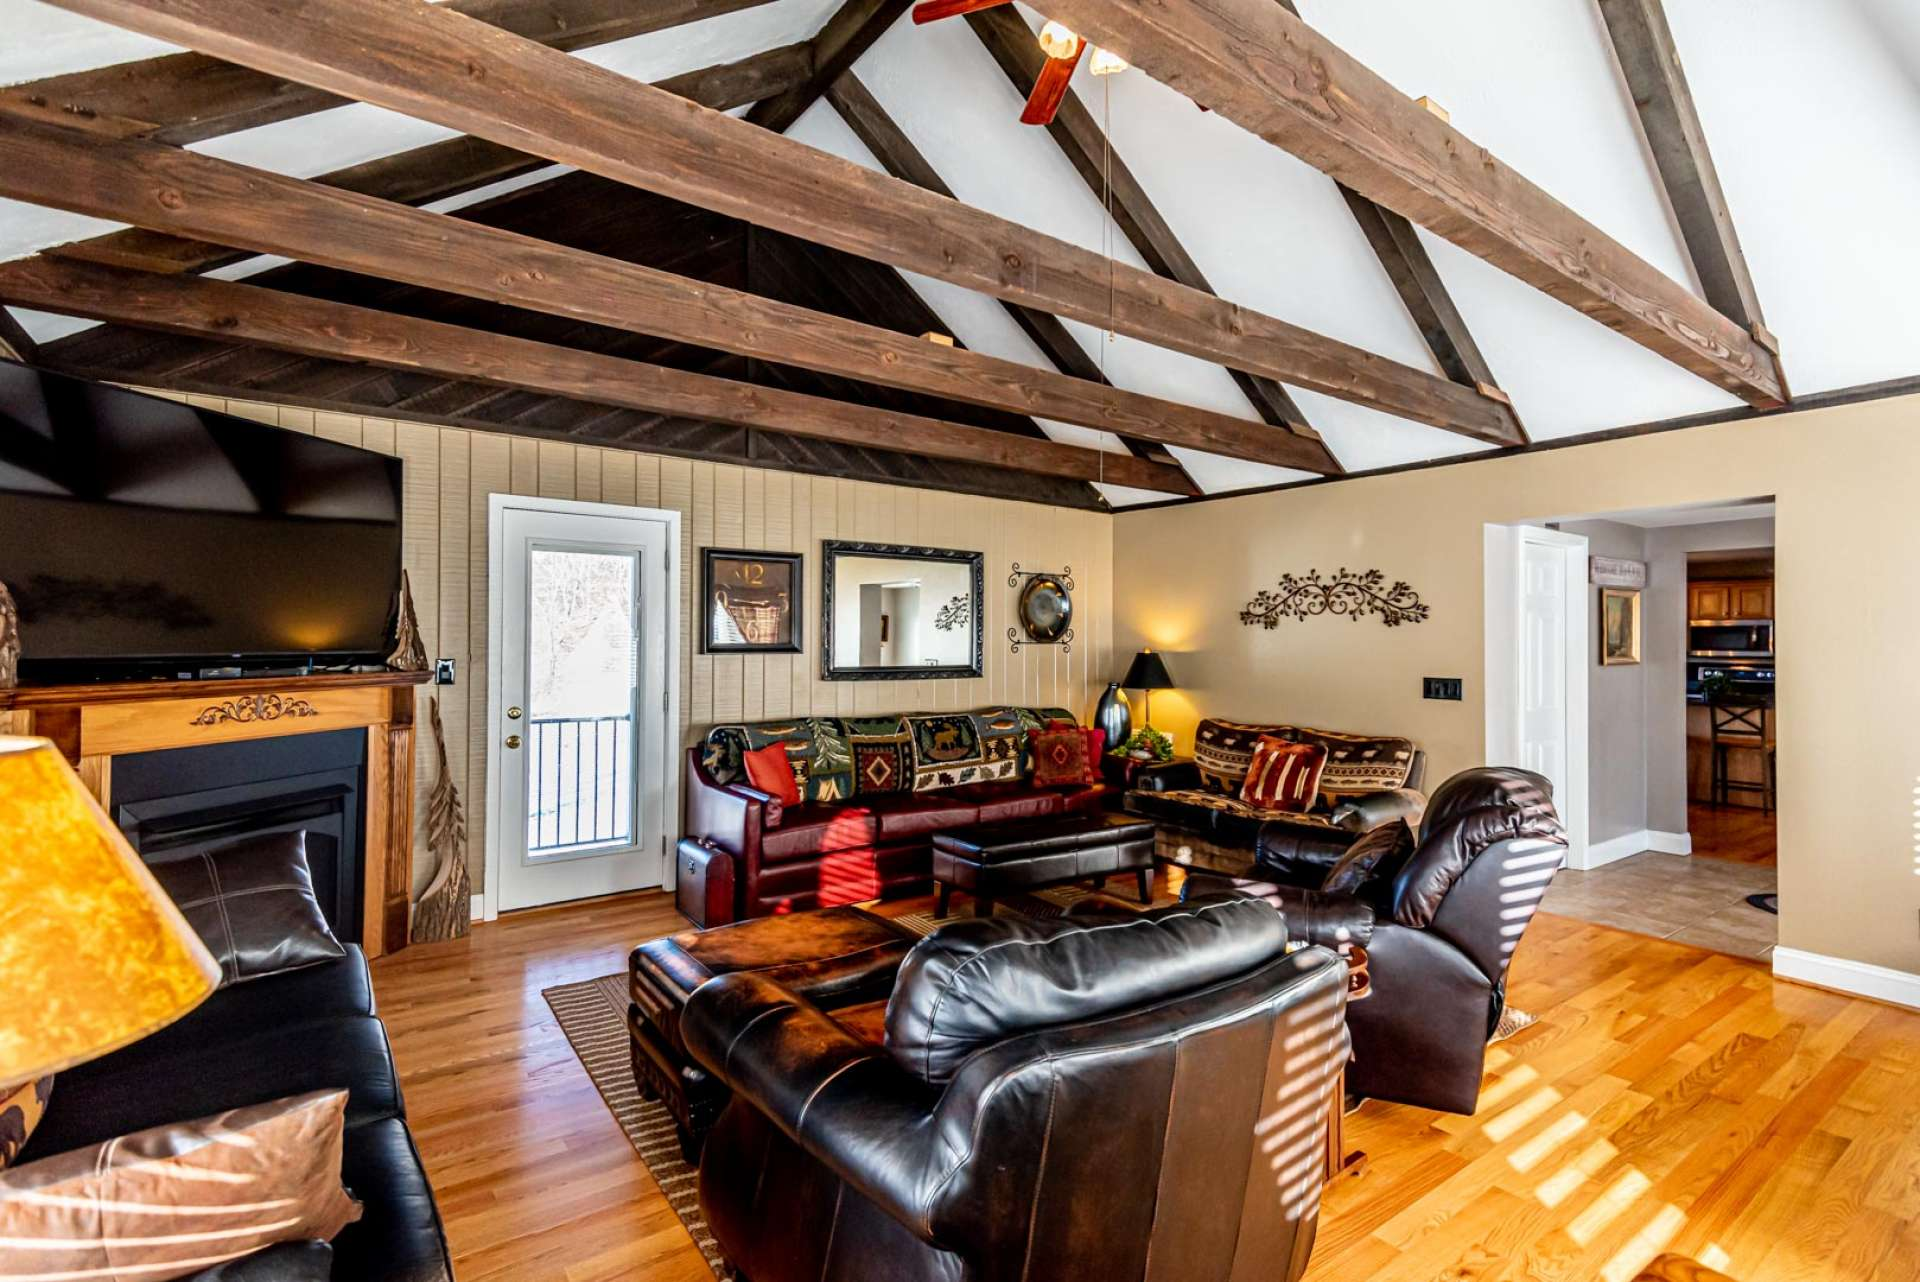 Lots of windows fill the room with natural light while the vaulted ceiling and beams add to the open feel.